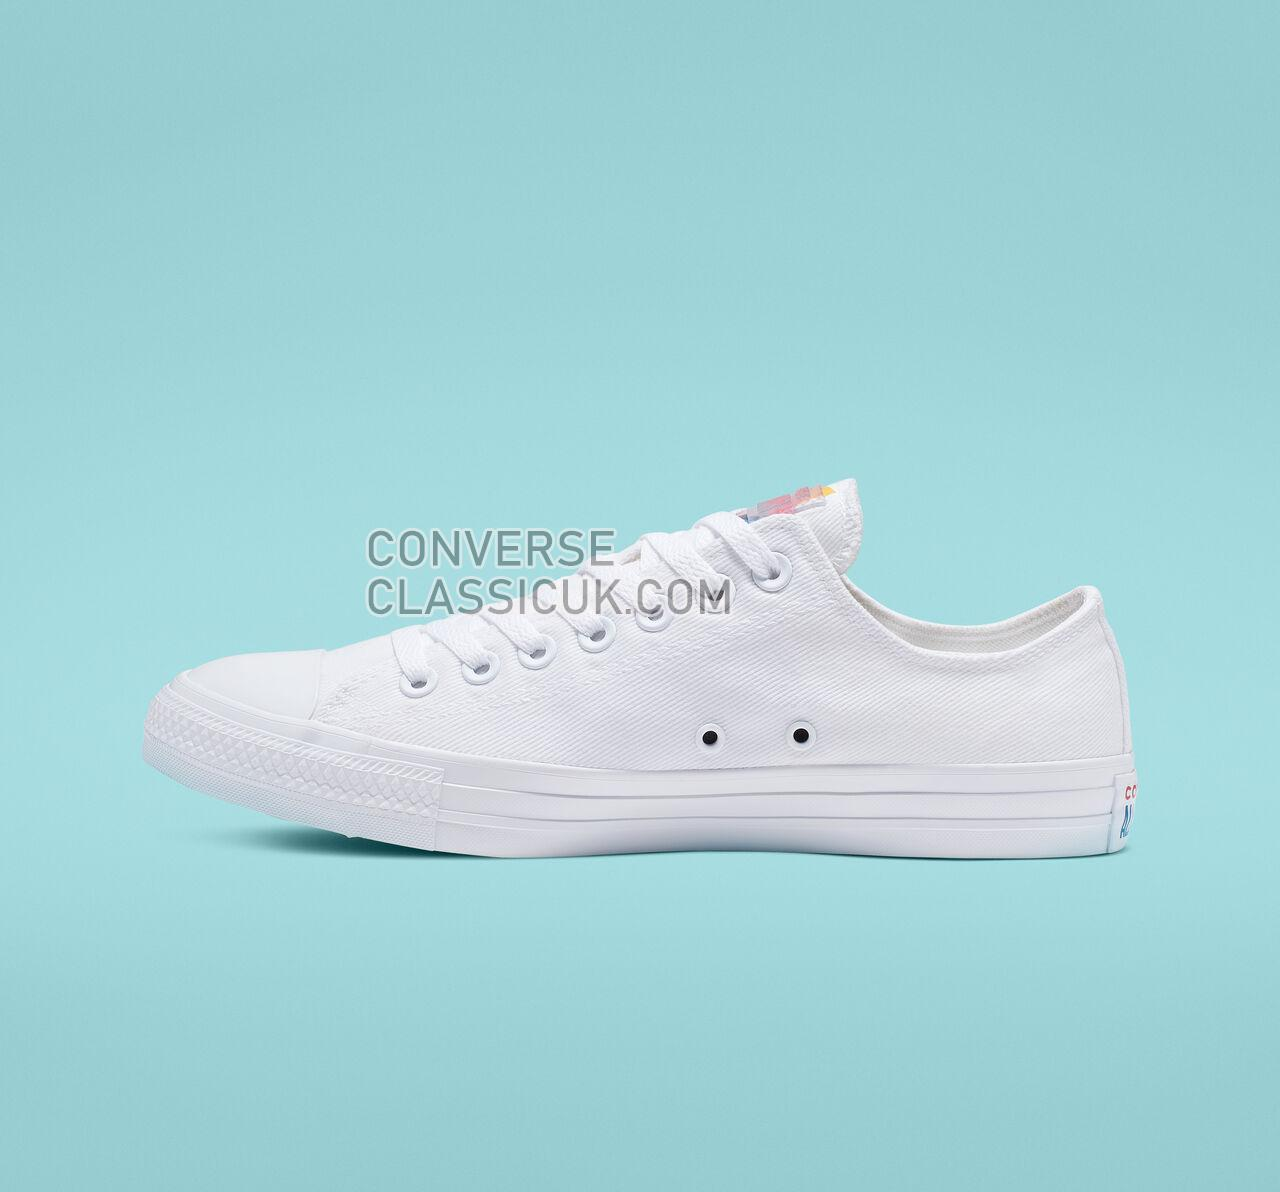 Converse Chuck Taylor All Star Space Racer Low Top Mens Womens Unisex 165330F White/University Gold/White Shoes